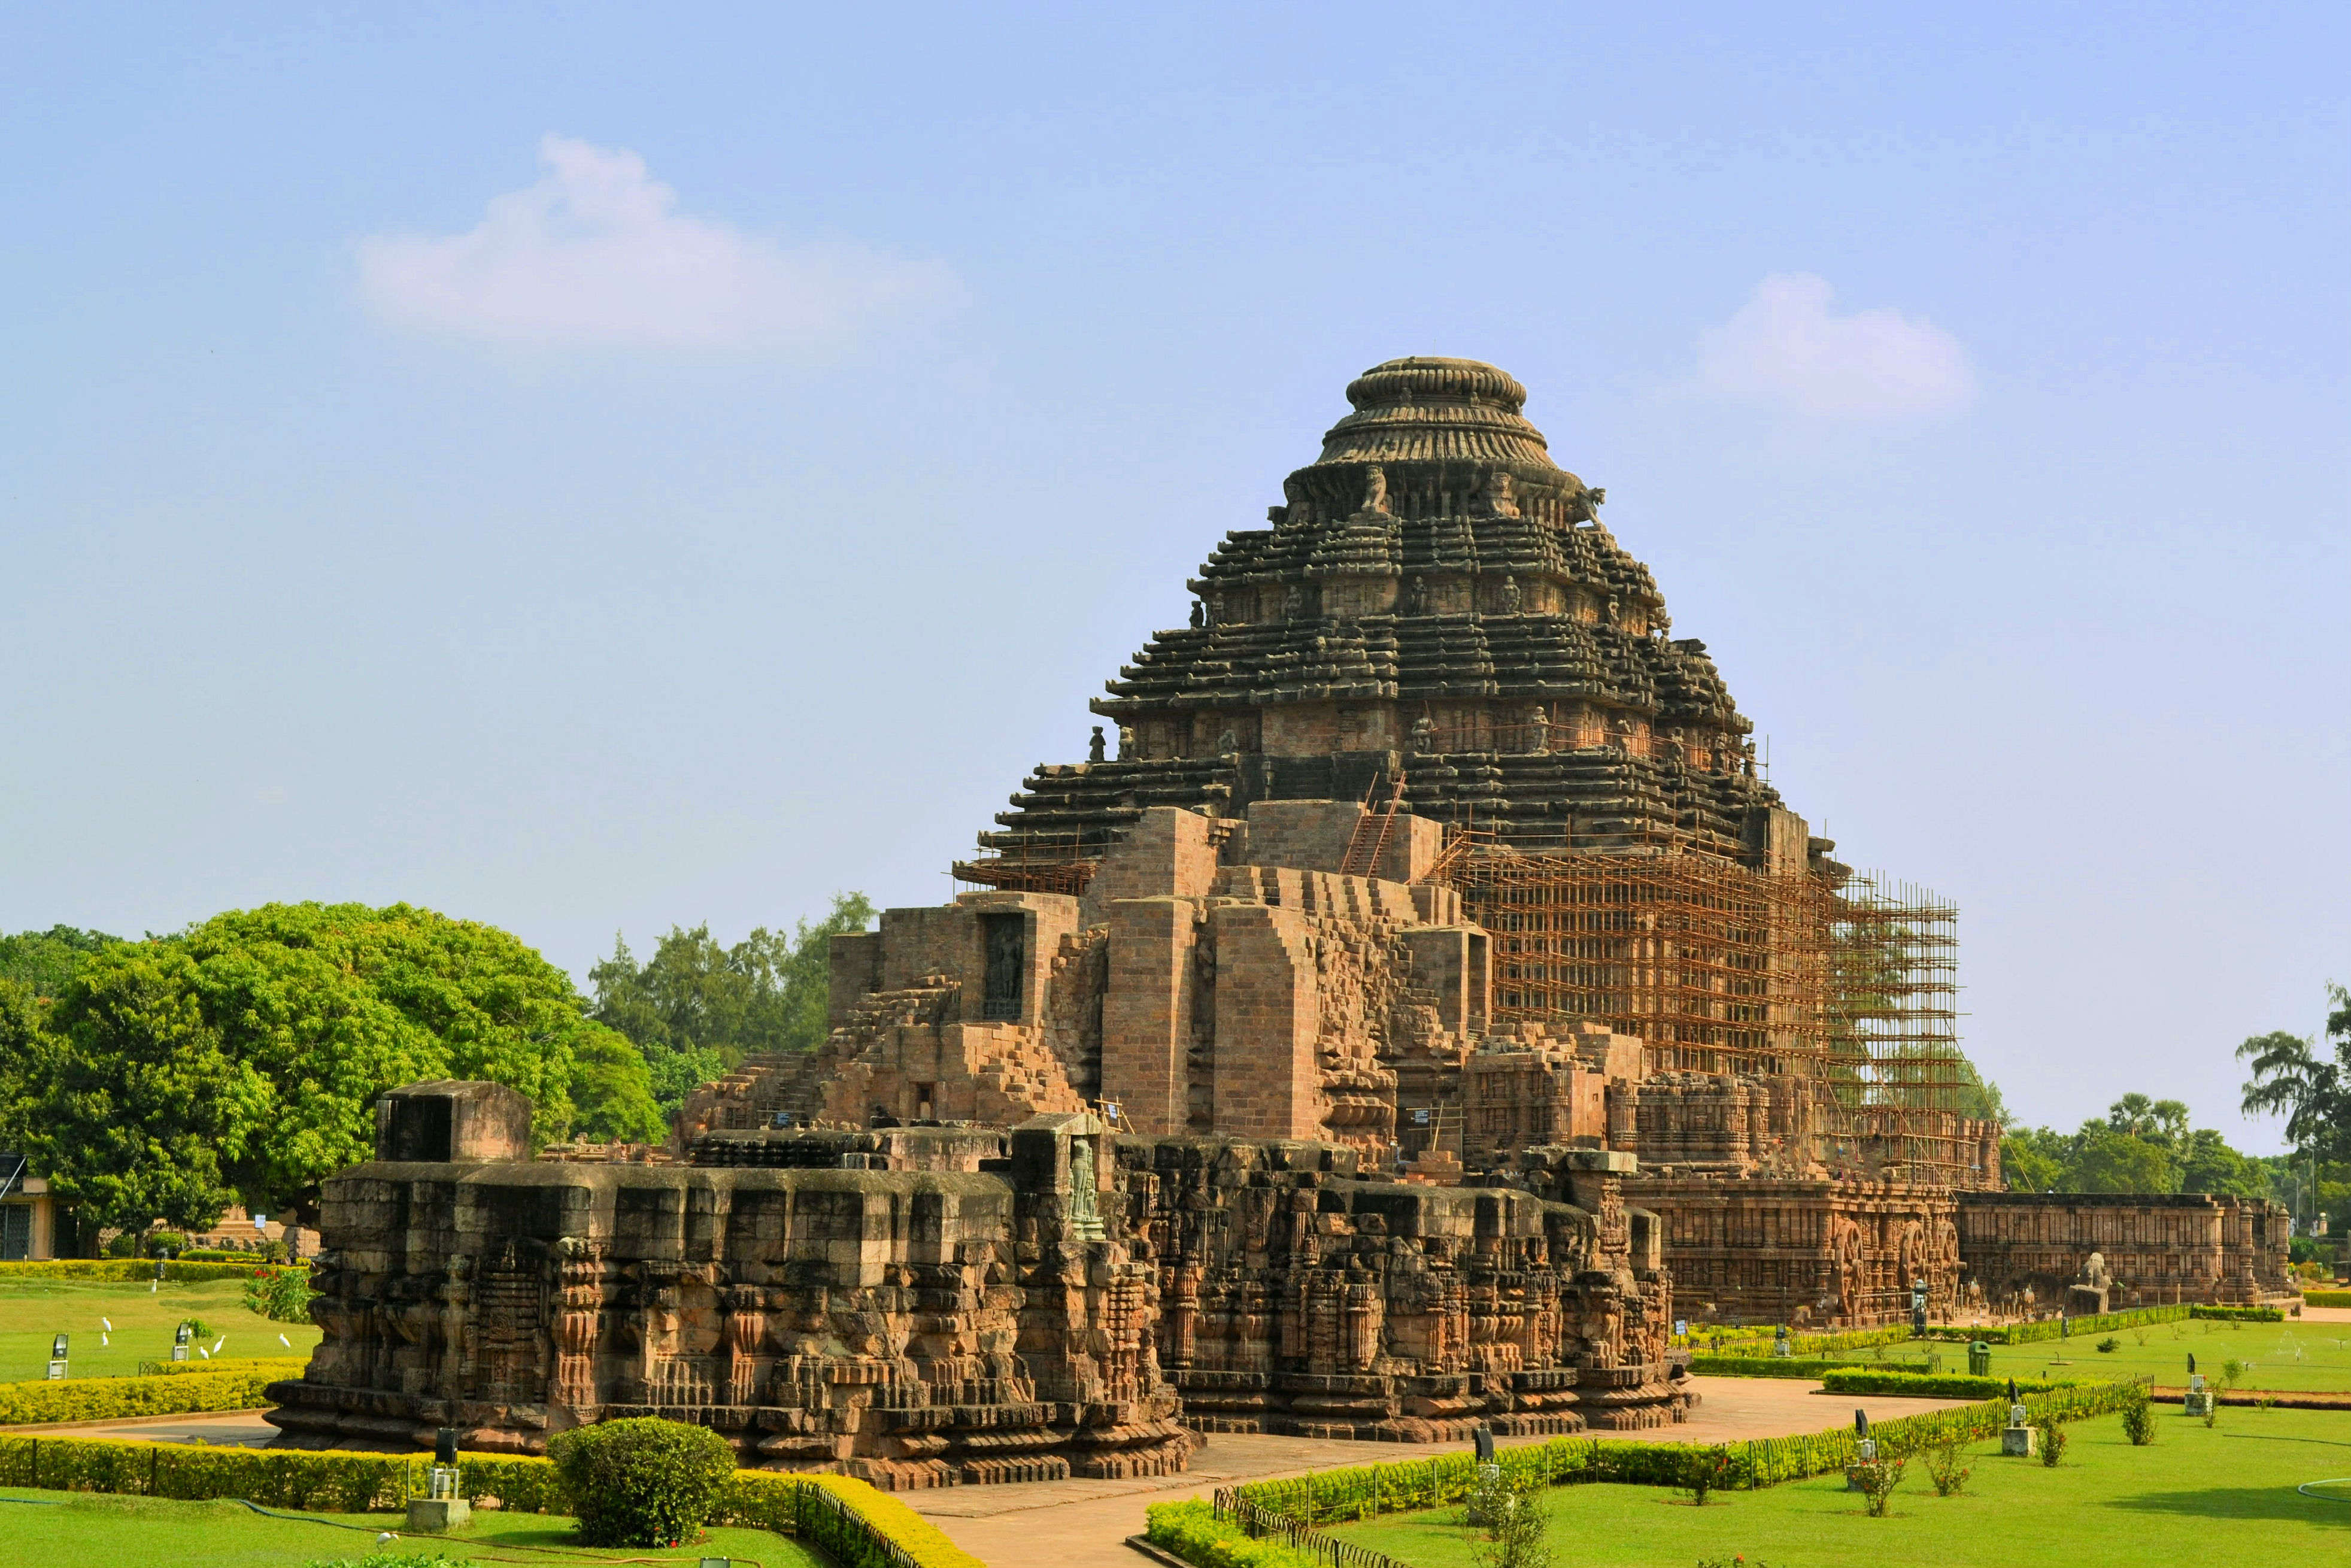 Now you can take pictures inside protected Indian sites and monuments